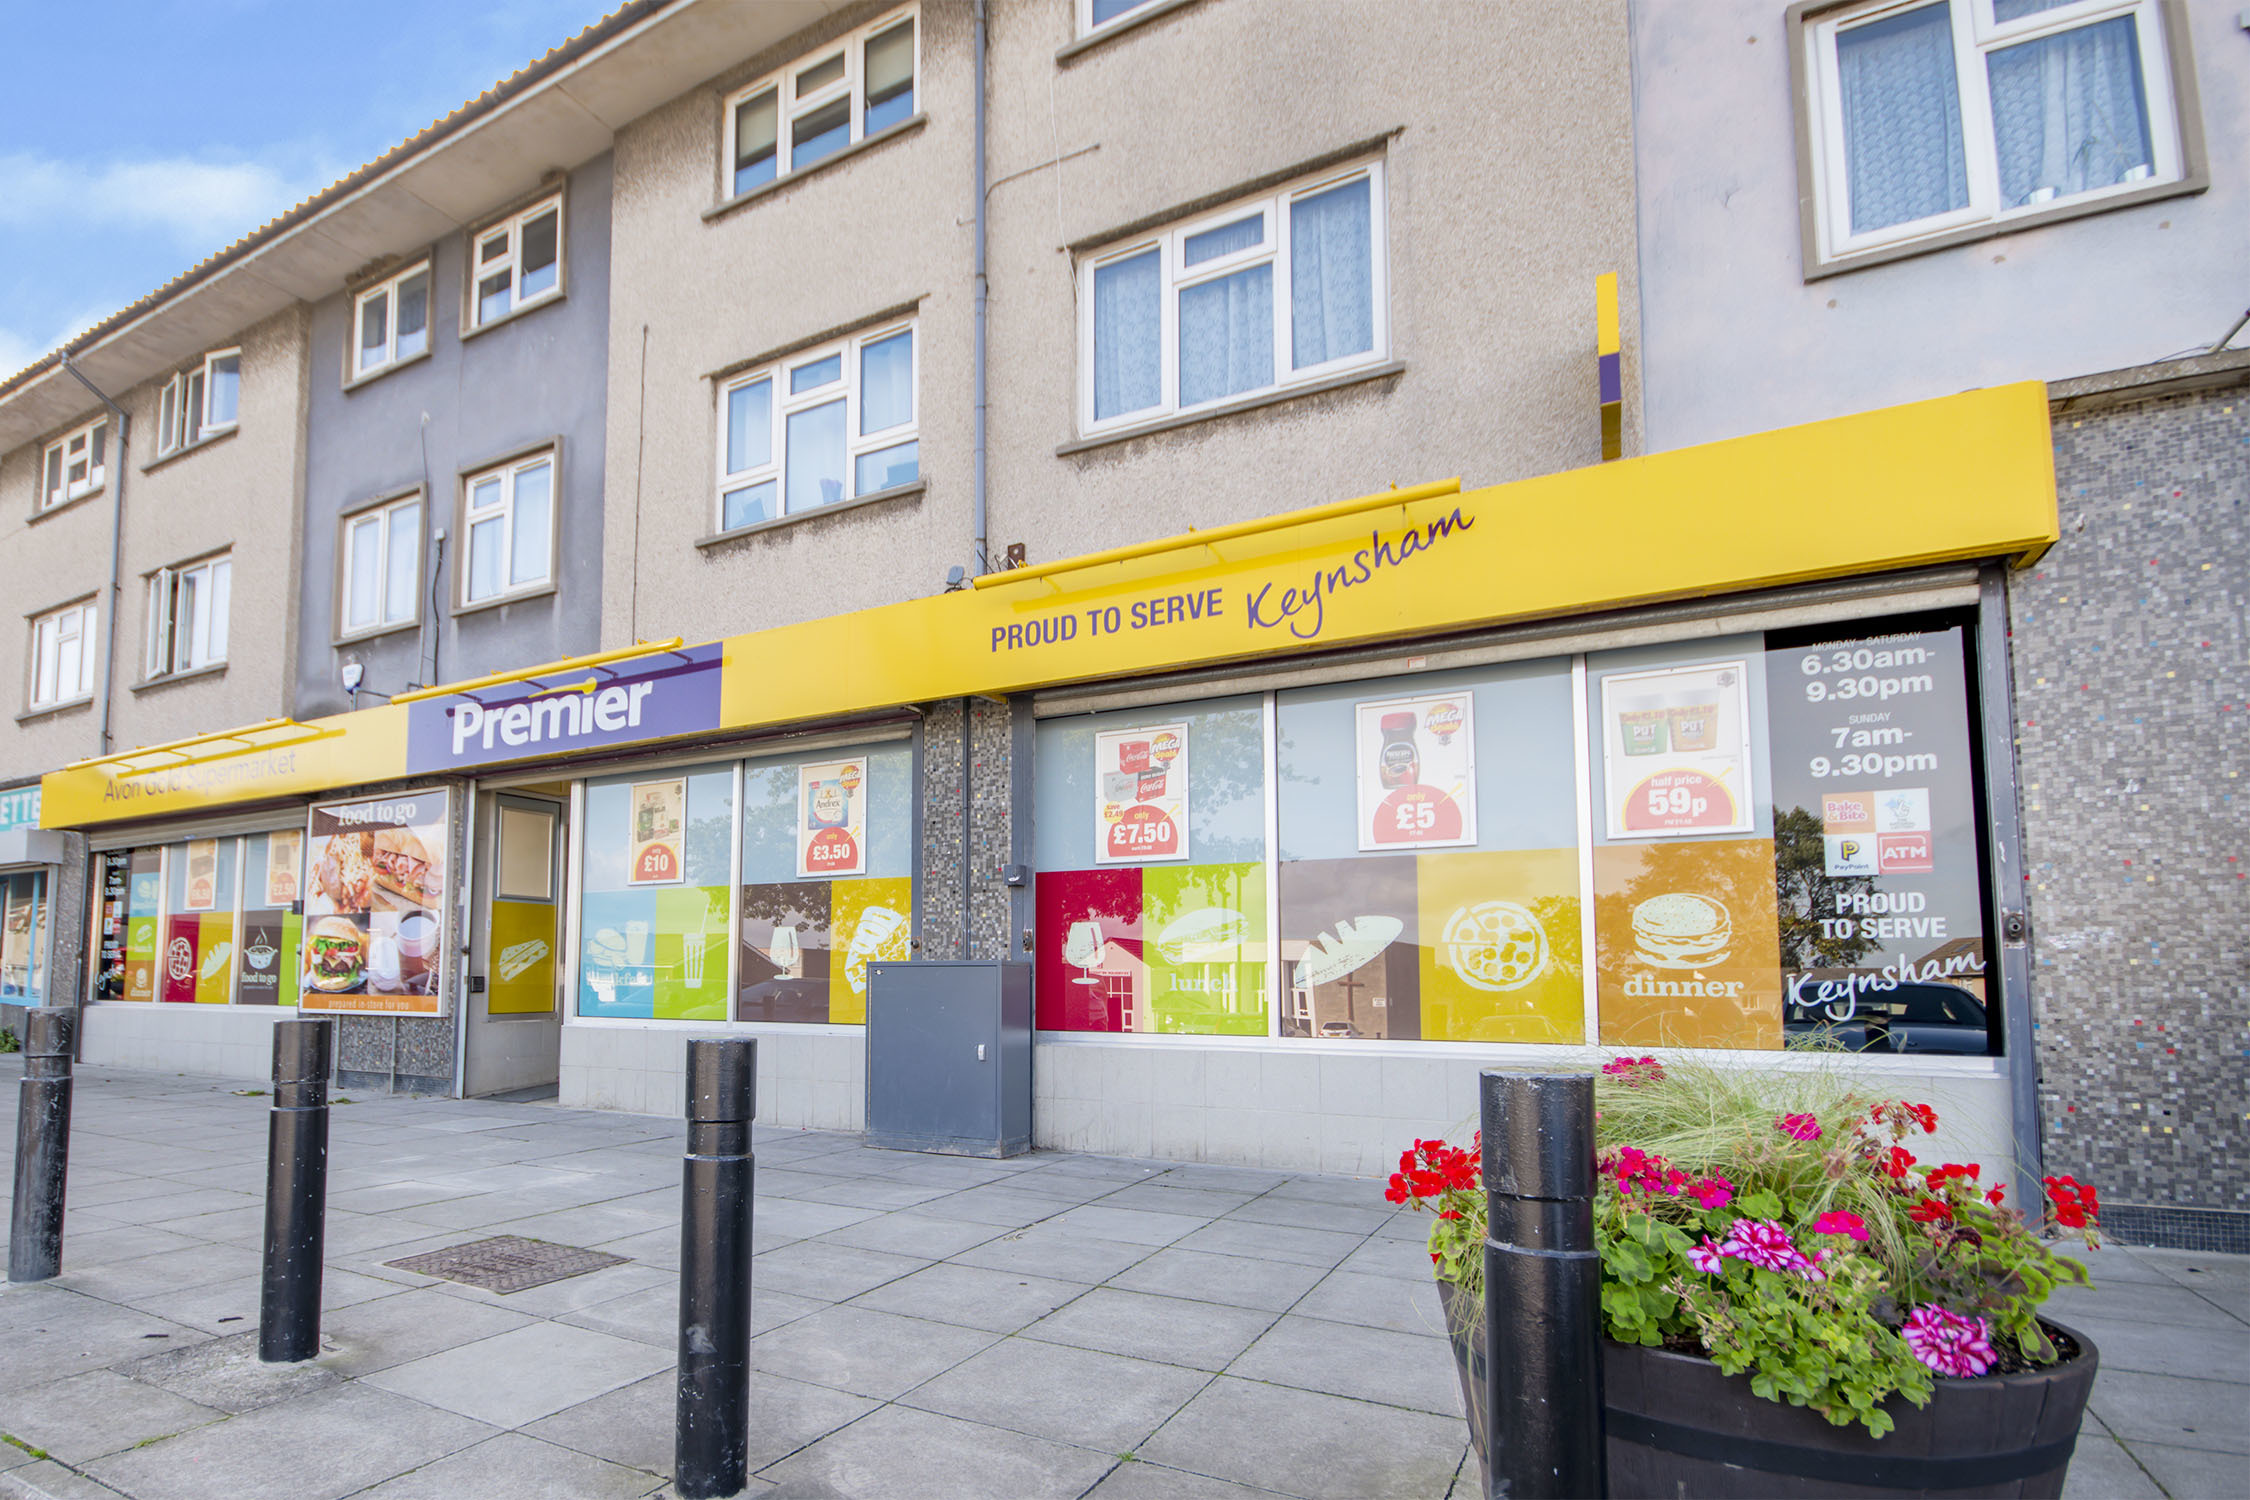 SOLD: The convenience store in Keynsham